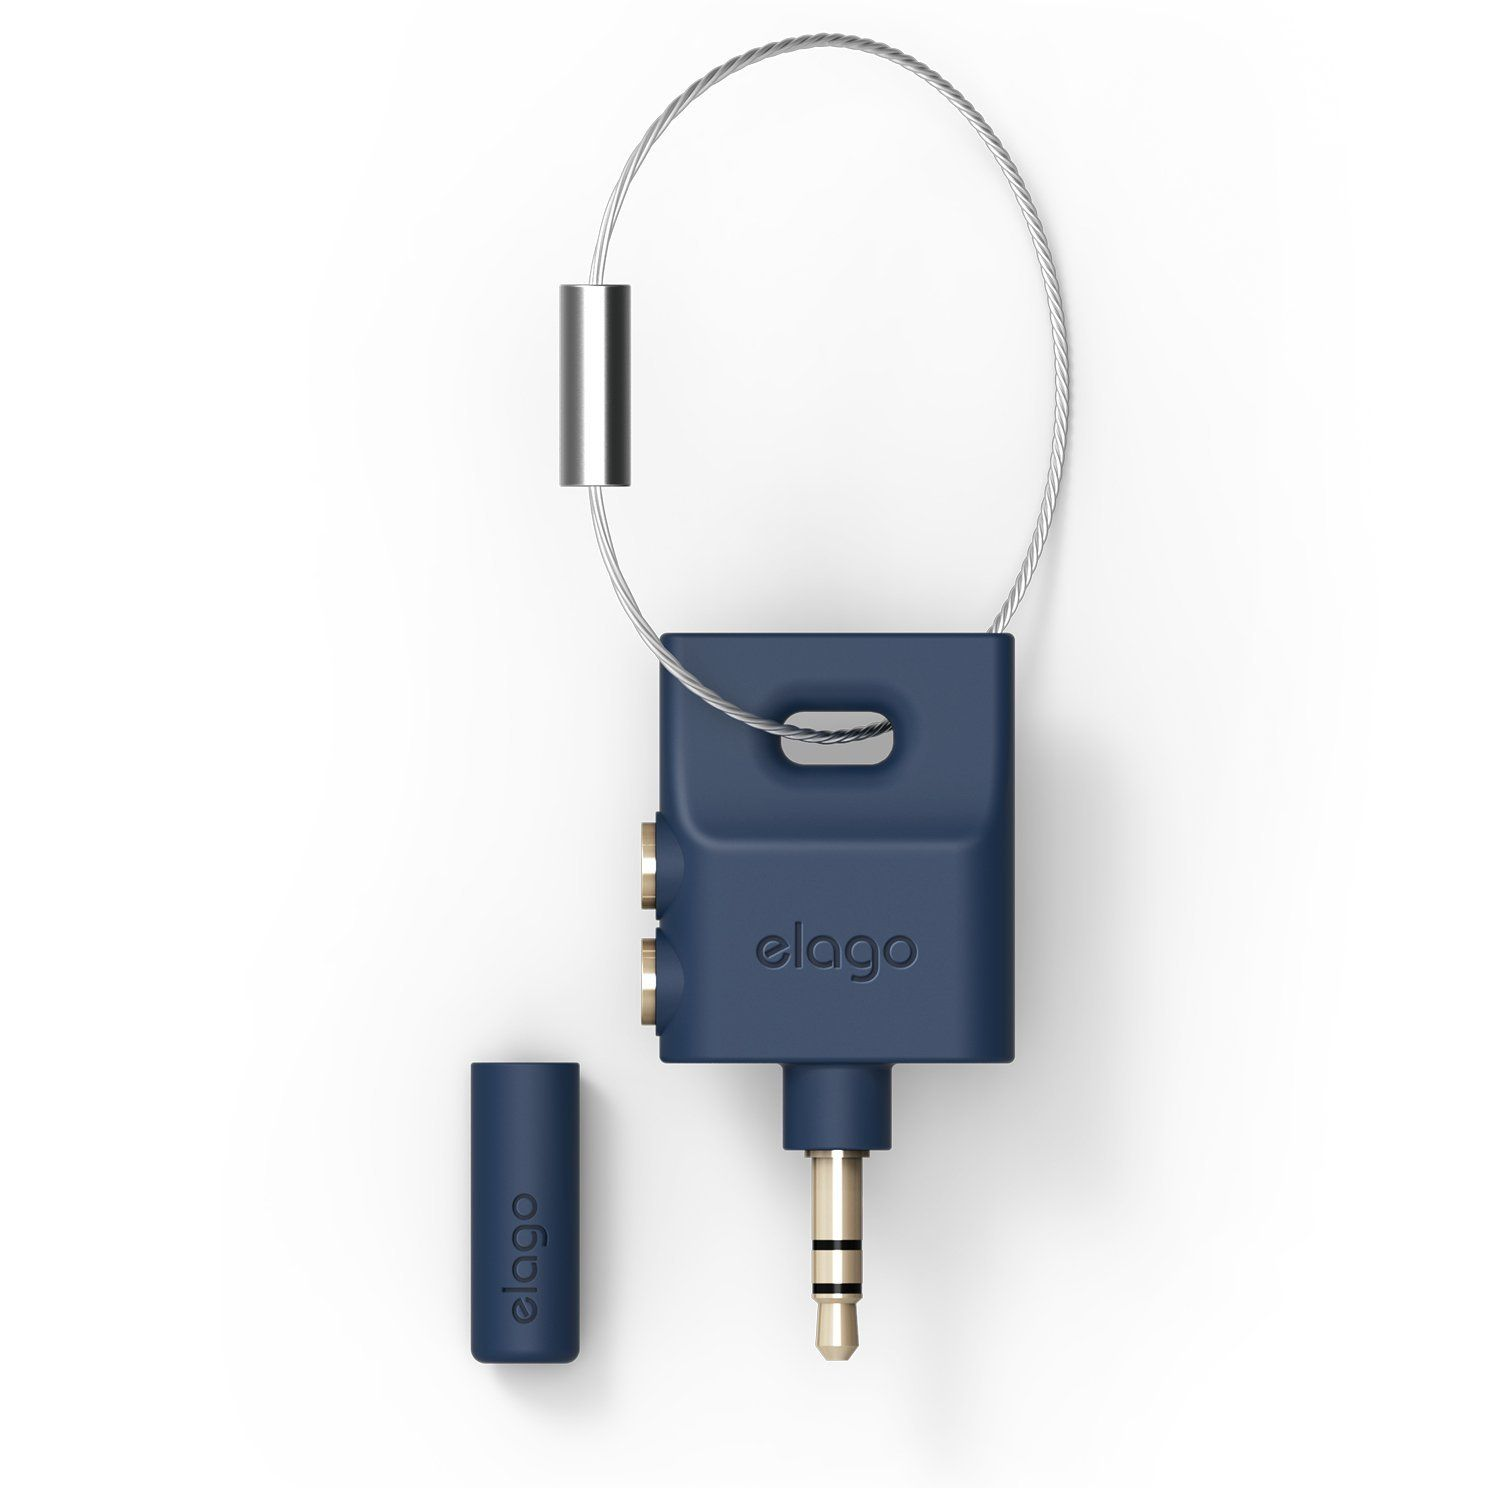 Jean Indigo Galaxy and Any Portable Device with 3.5mm elago Keyring Headphone Splitter for iPhone iPod iPad